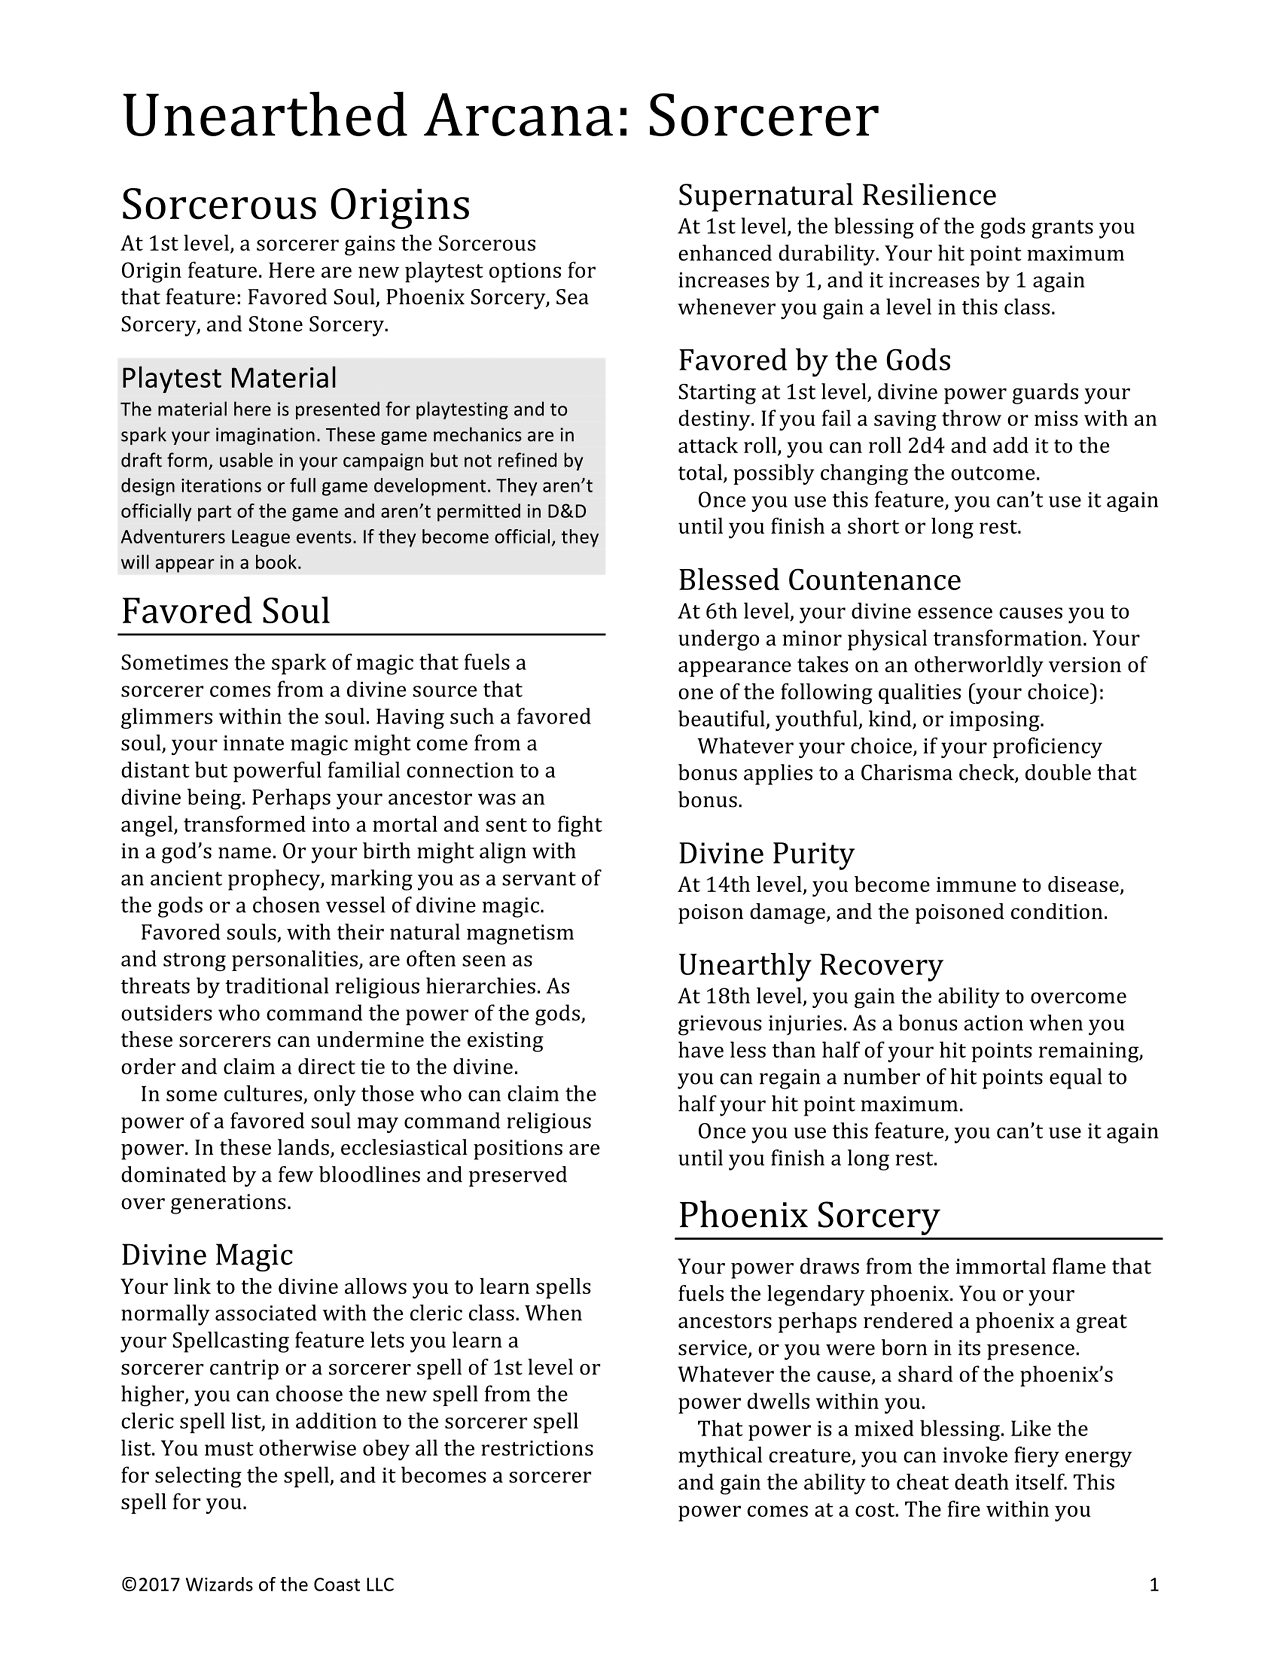 Unearthed Arcana Sorcerer: Favored Soul, Phoenix, Sea, Stone